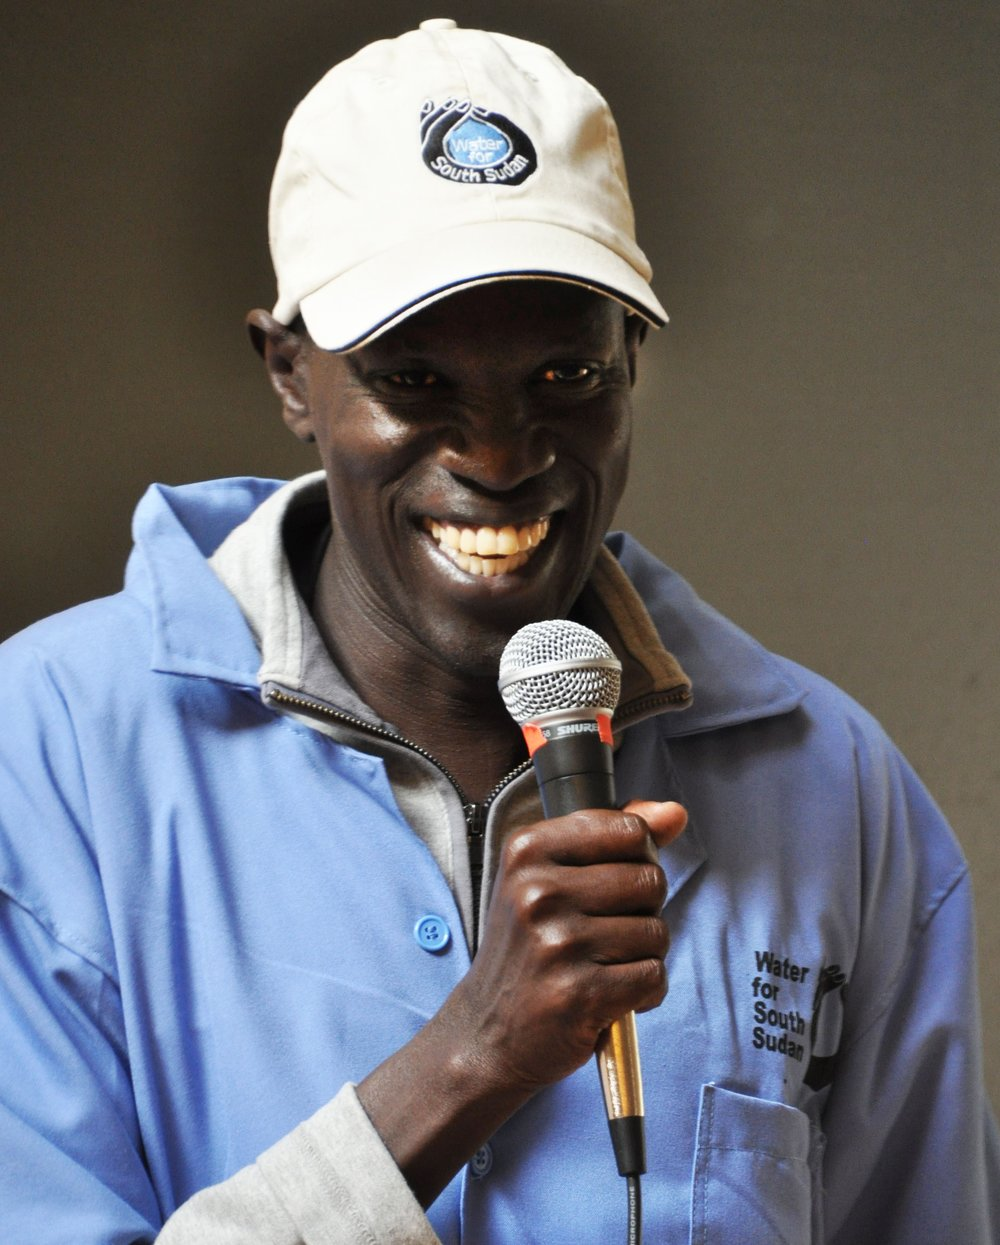 Salva Dut, Founder of Water for South Sudan